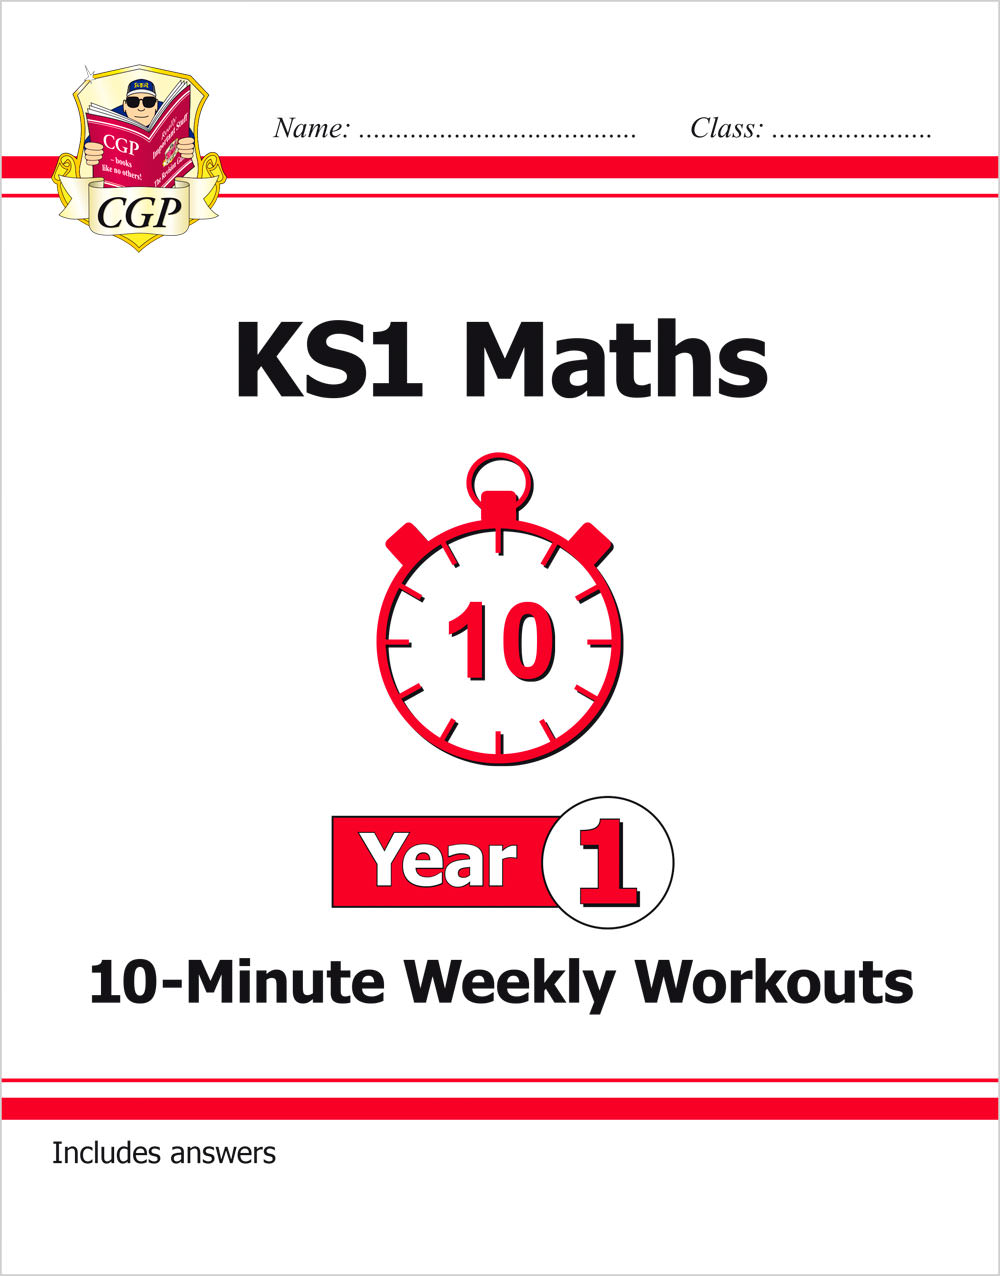 M1XW11 - KS1 Maths 10-Minute Weekly Workouts - Year 1